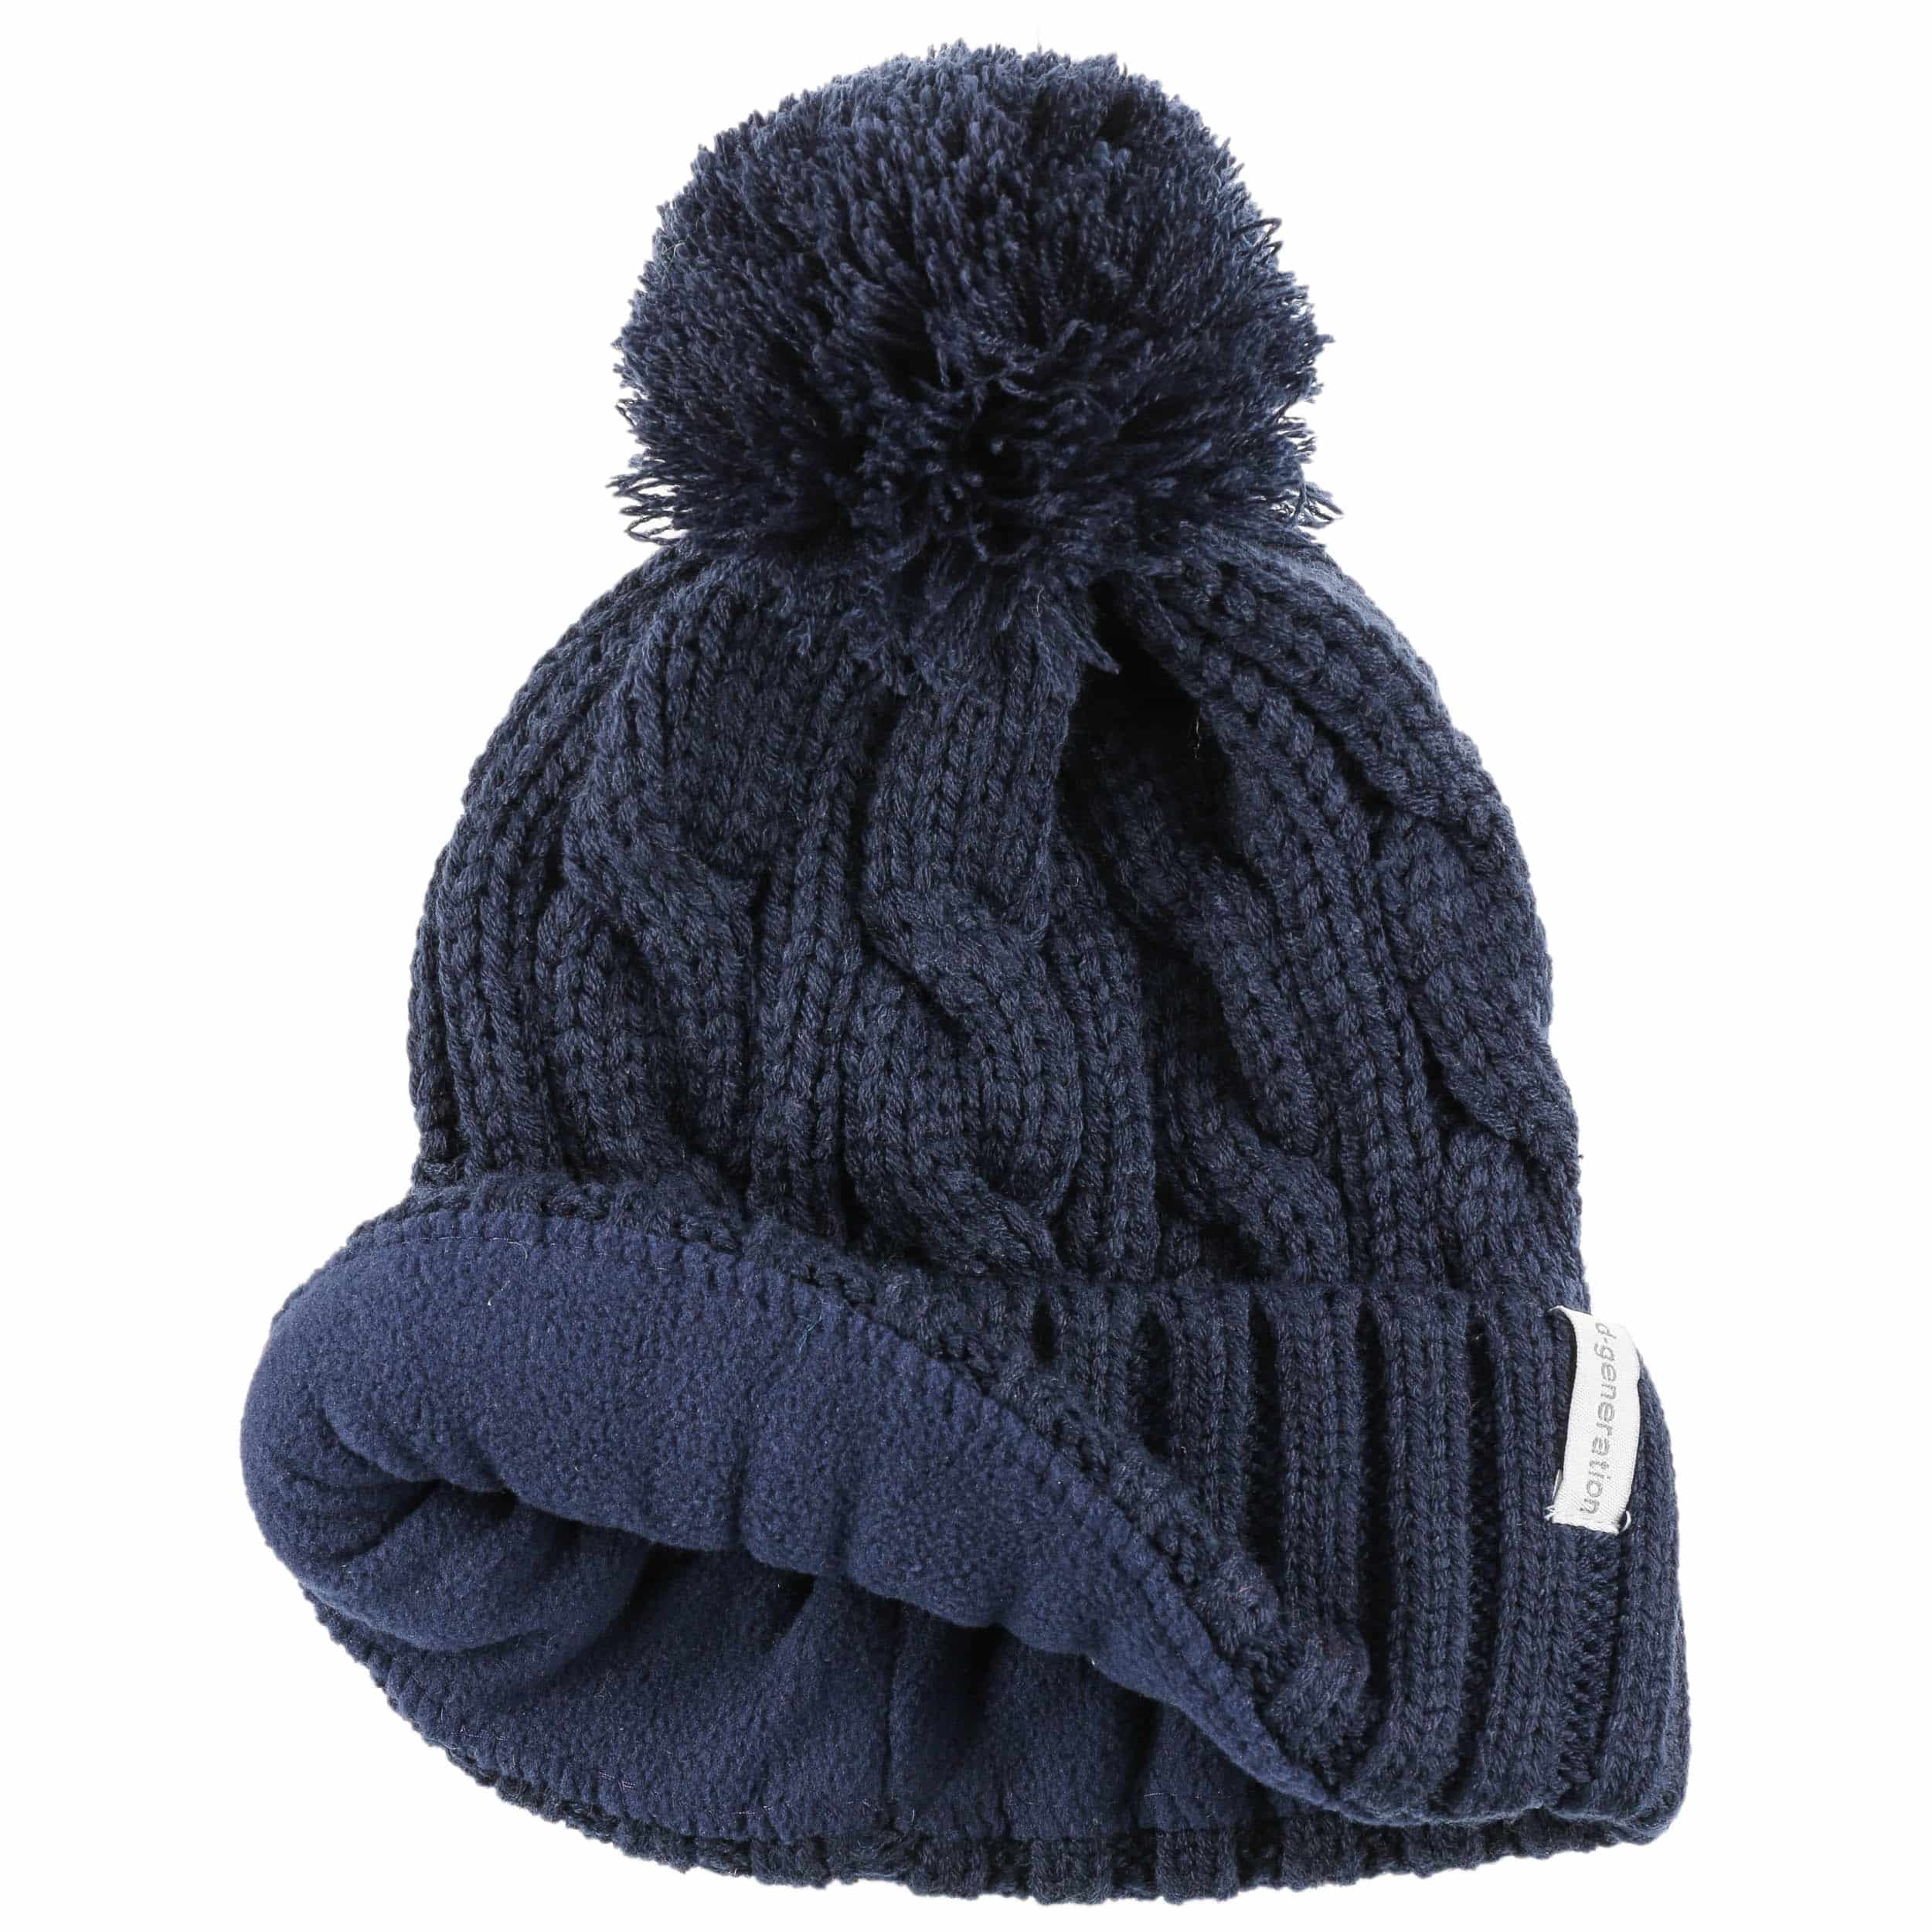 Cable Knit Pom Pom Hat By D 246 Ll Eur 19 95 Gt Hats Caps